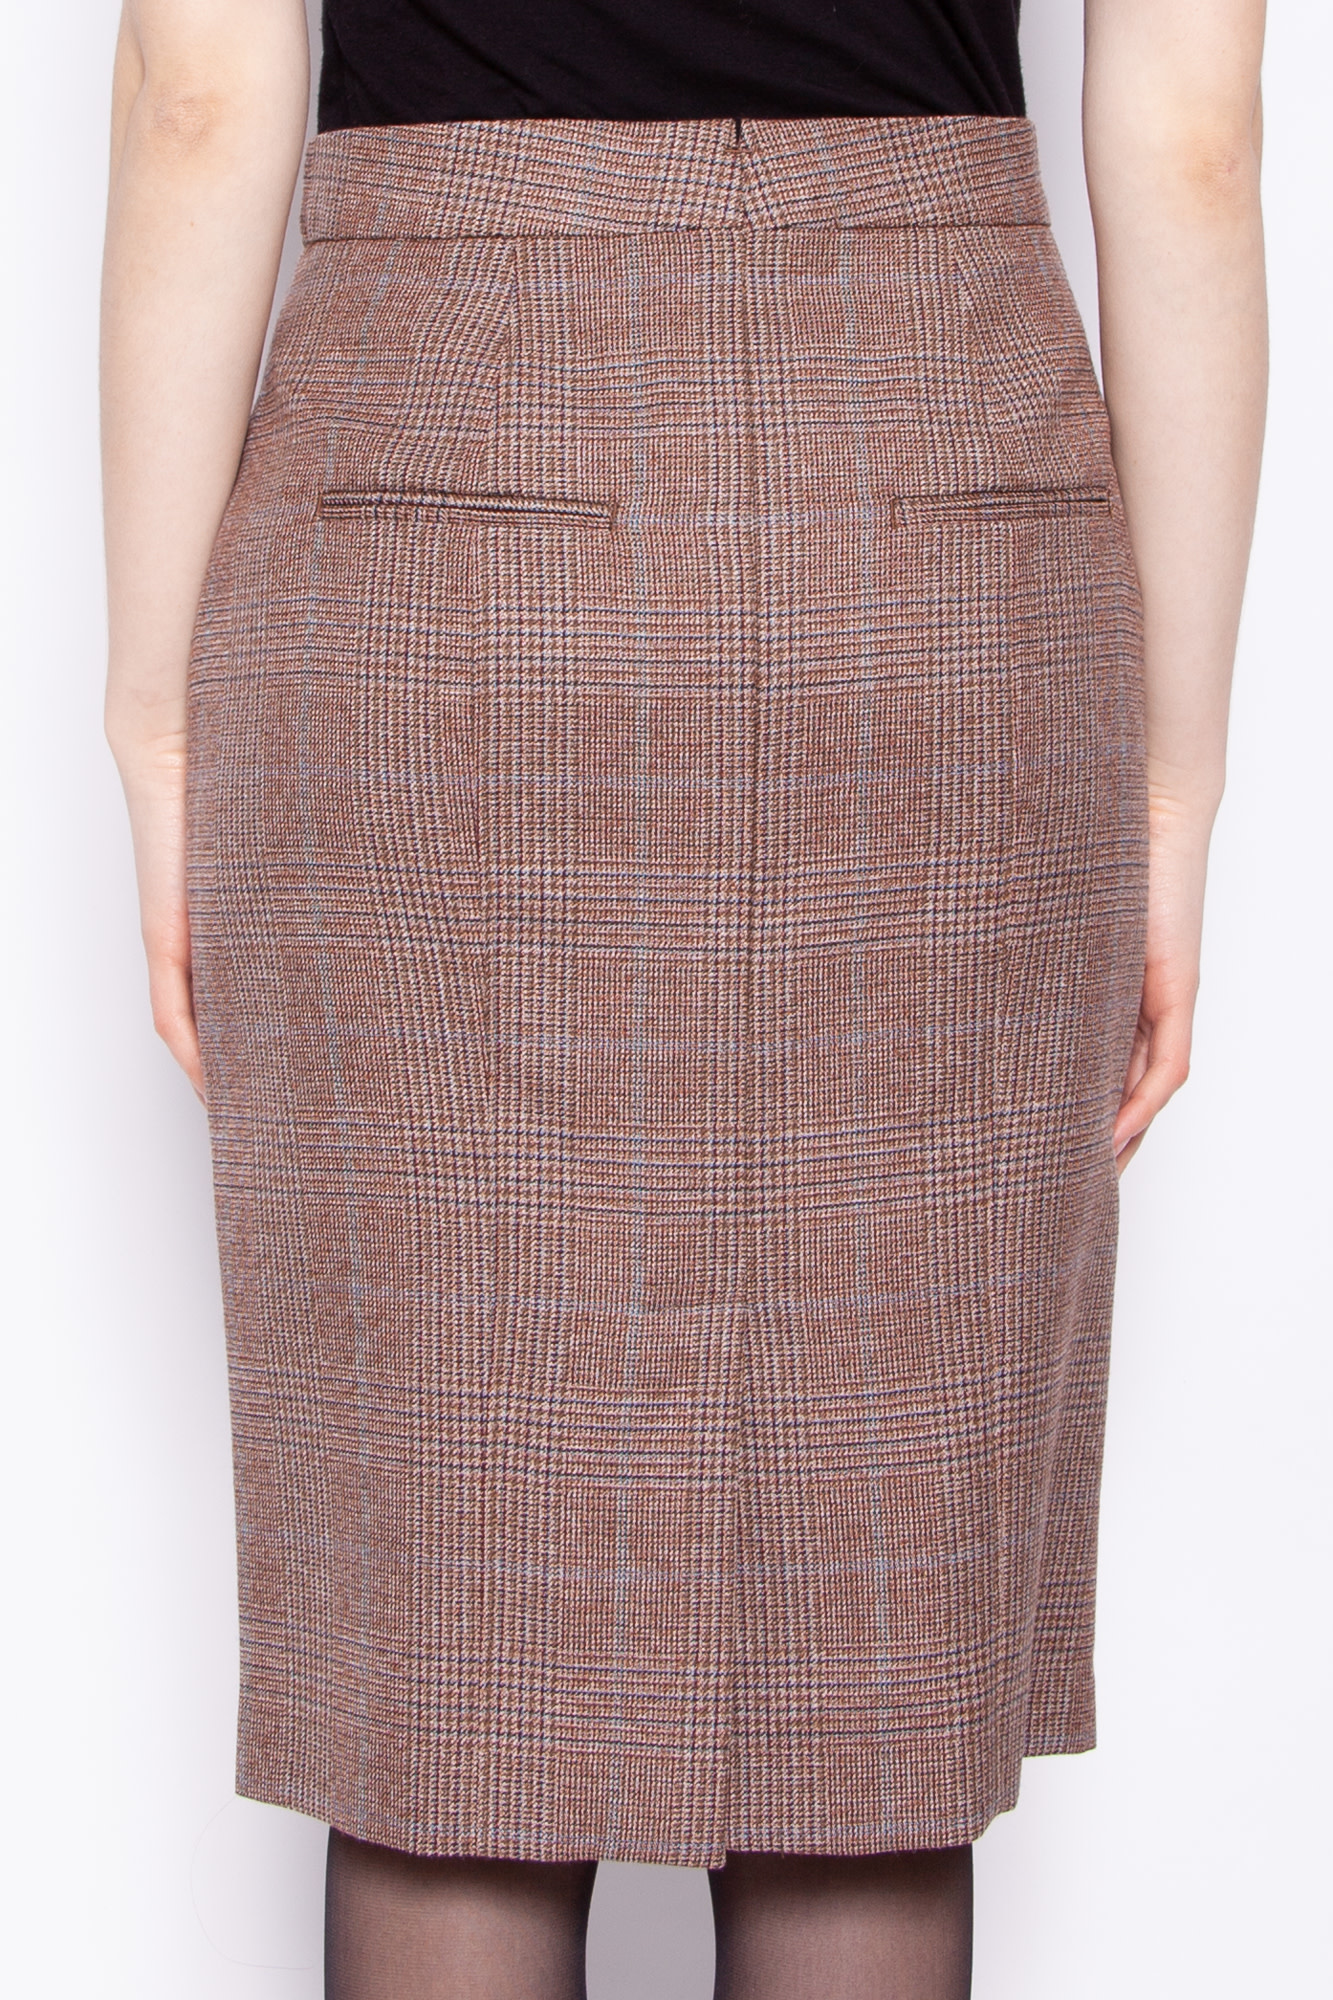 Landscape PRINCE OF WALES CHECK WOOL SKIRT - NEW WITH TAGS